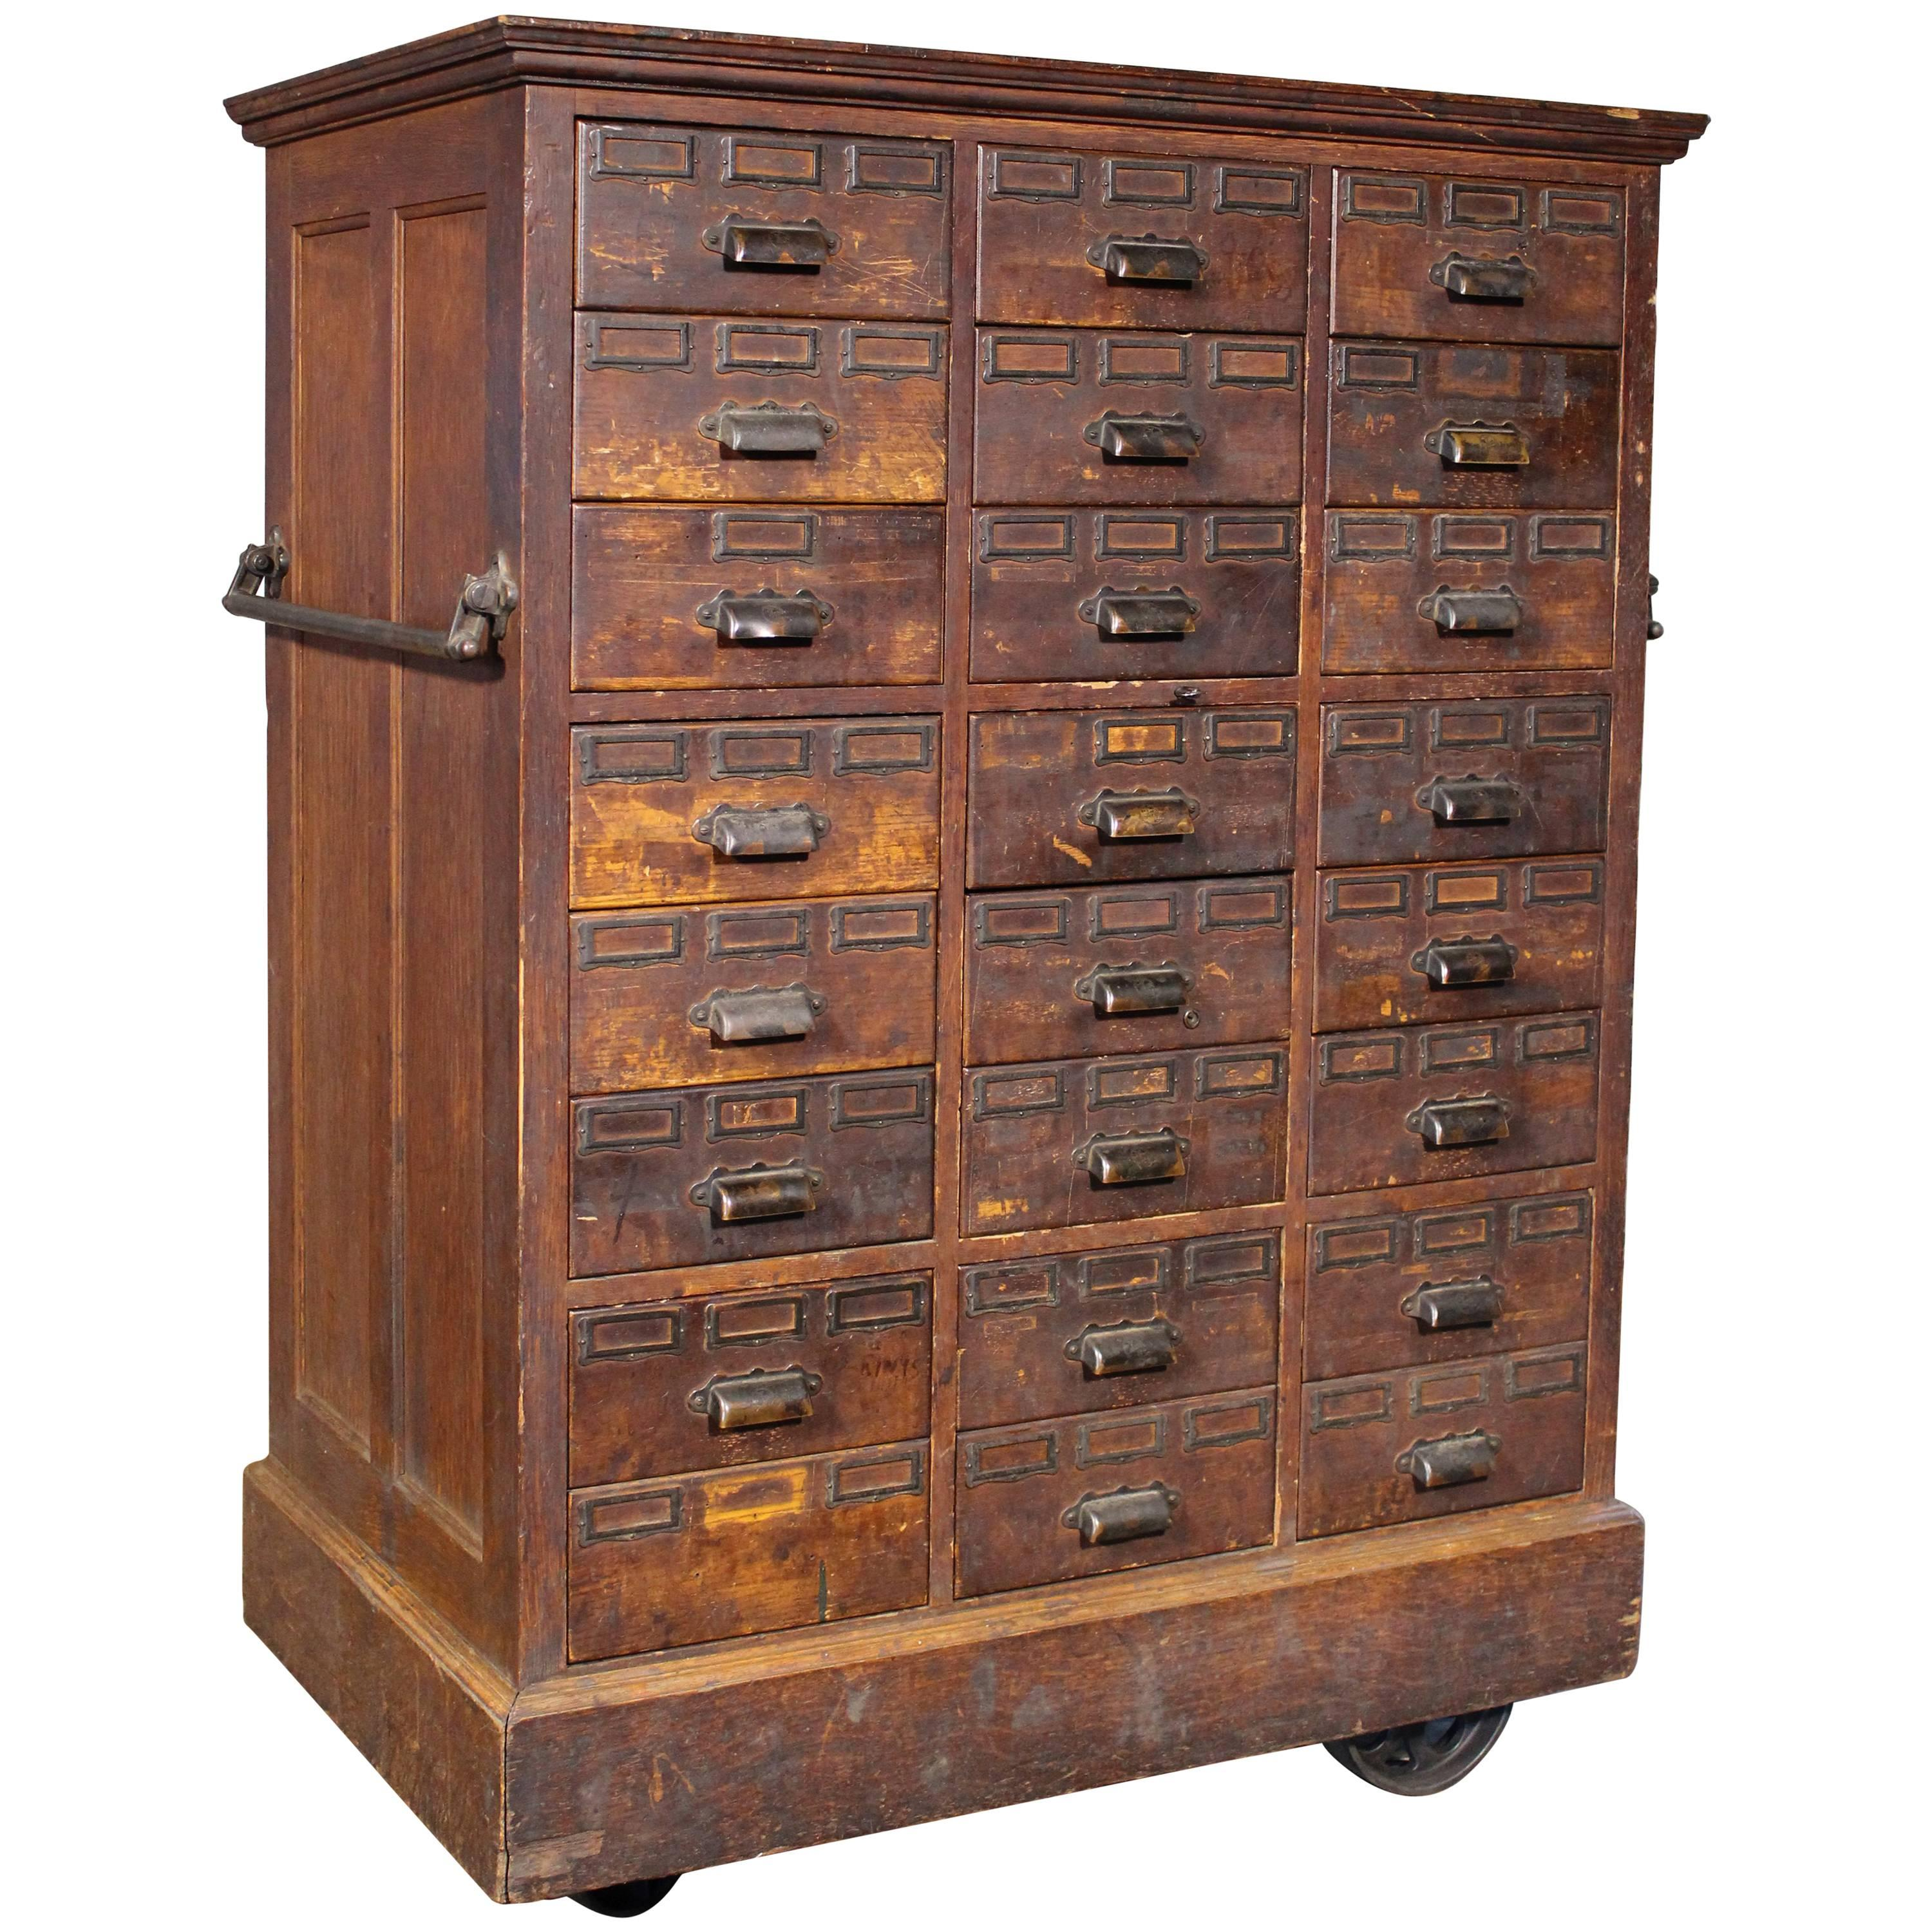 Antique and Vintage Apothecary Cabinets - 220 For Sale at 1stdibs